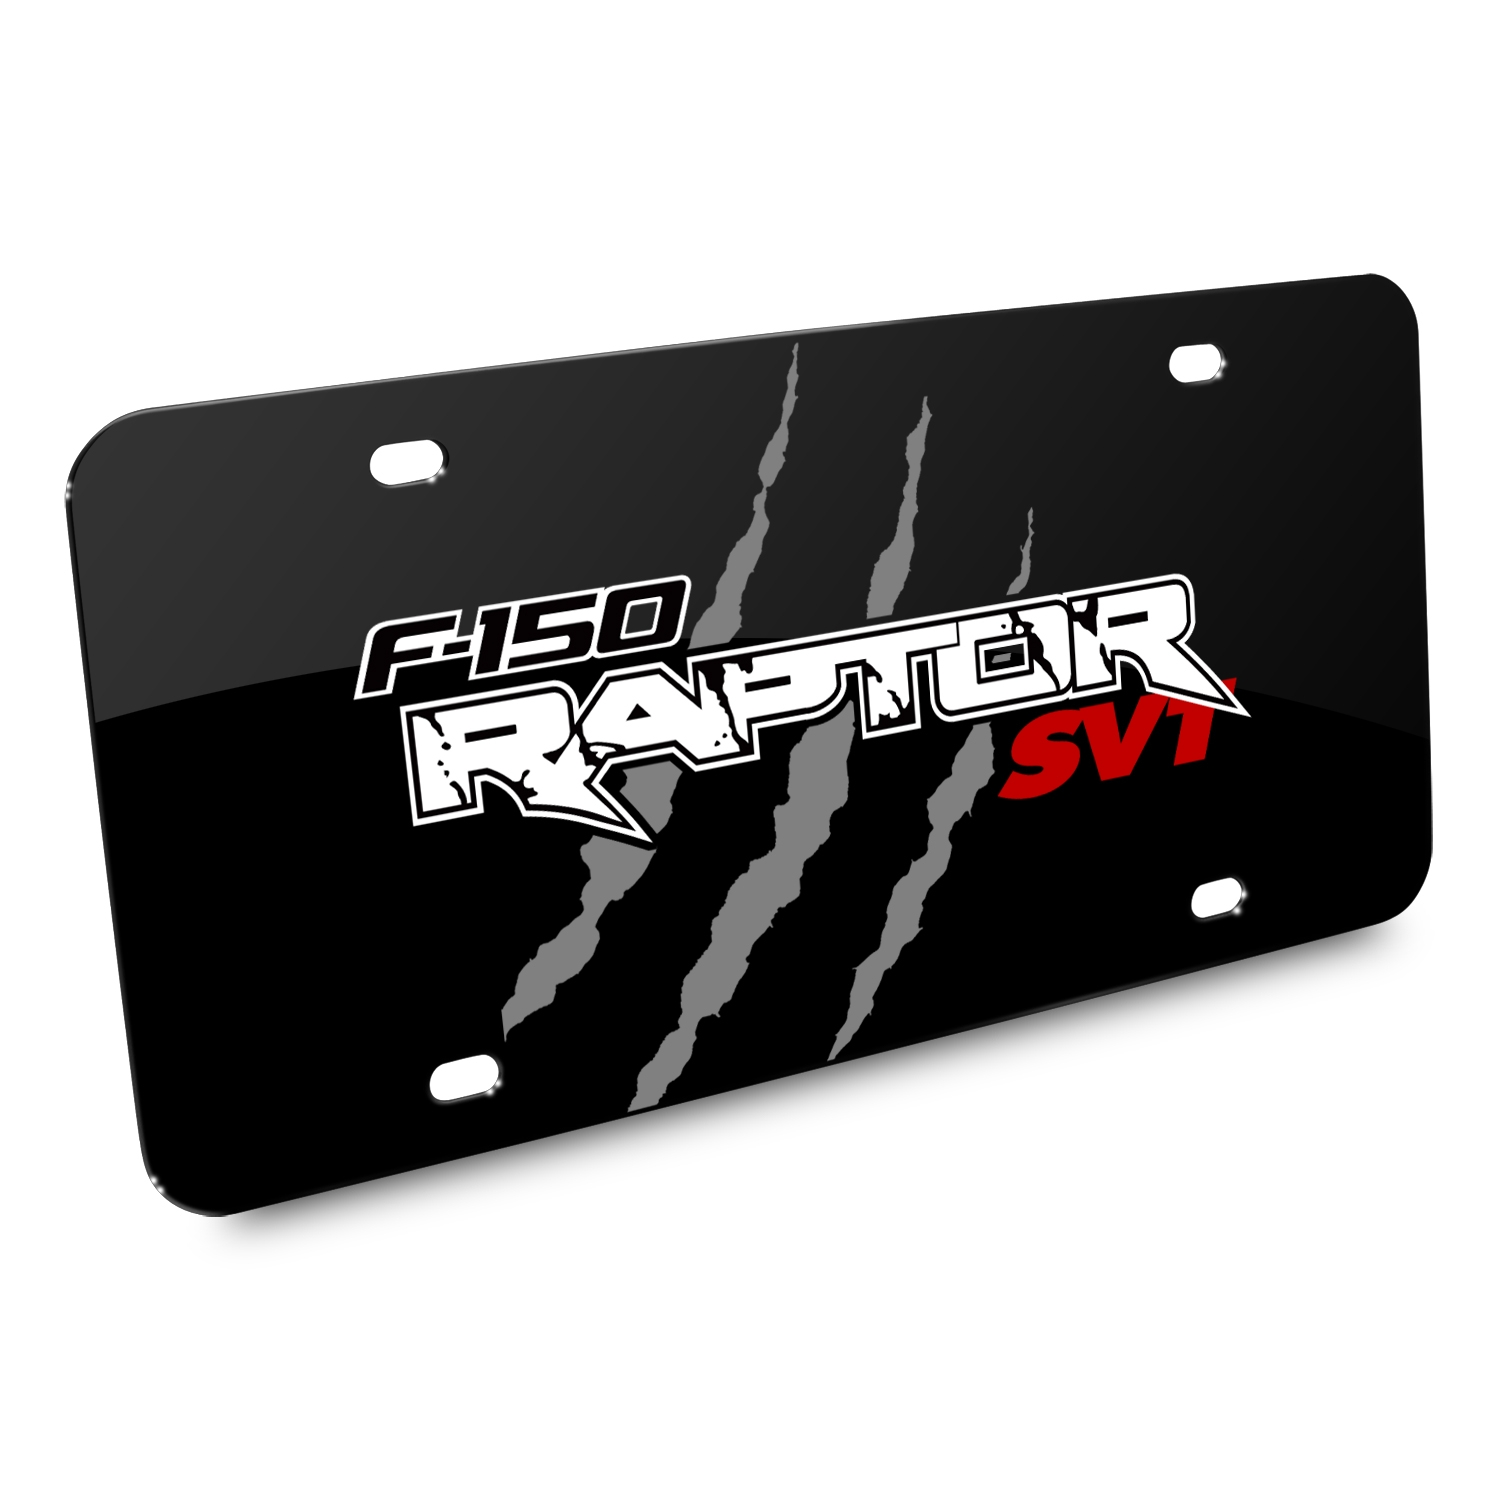 Ford F-150 Raptor SVT Claw Marks Graphic Black Acrylic License Plate